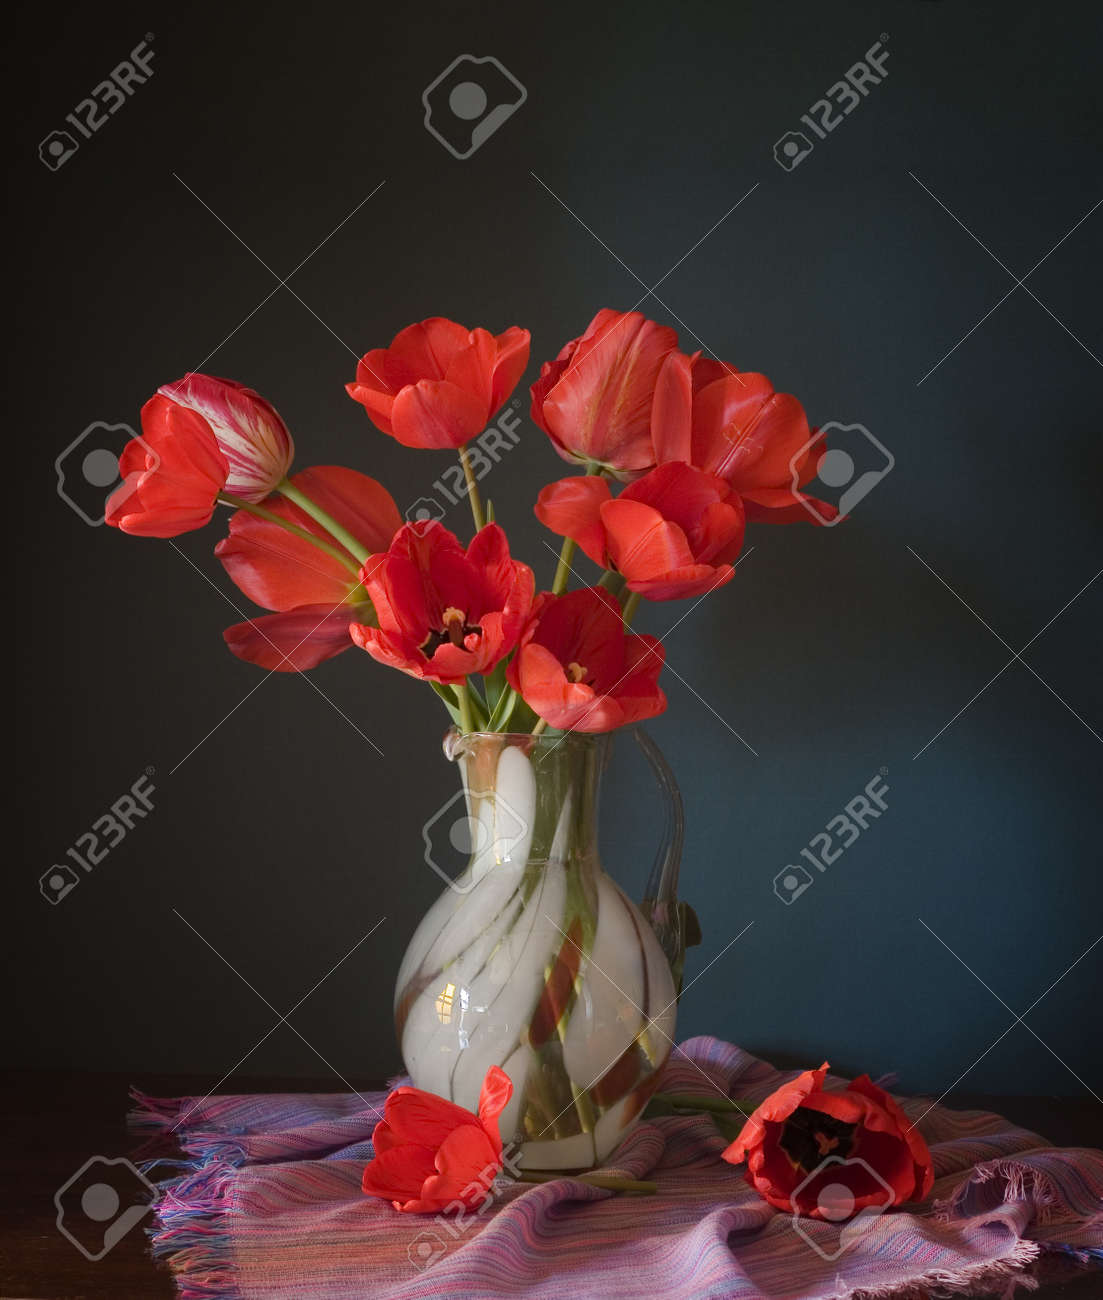 red tulips in a vase Stock Photo - 11544522